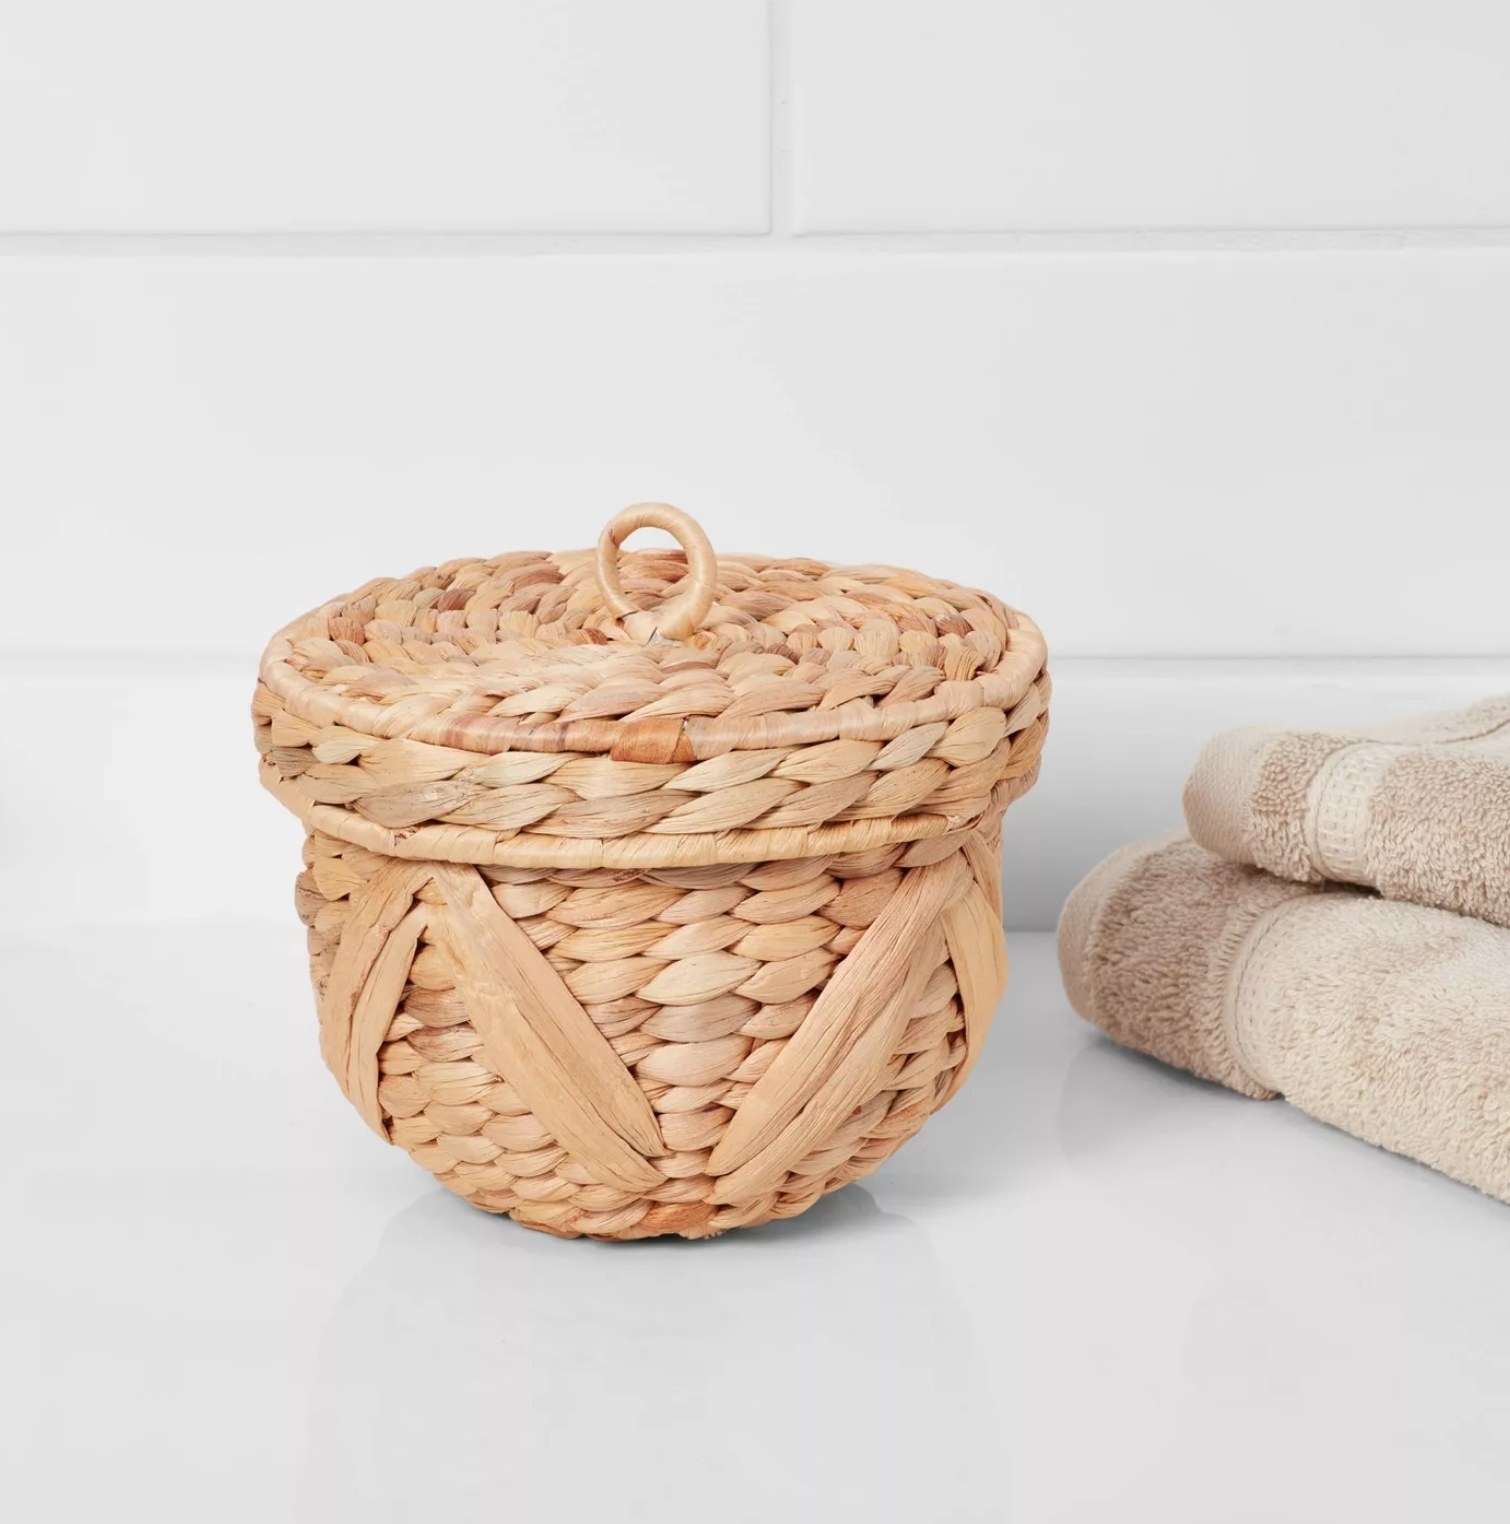 The woven canister